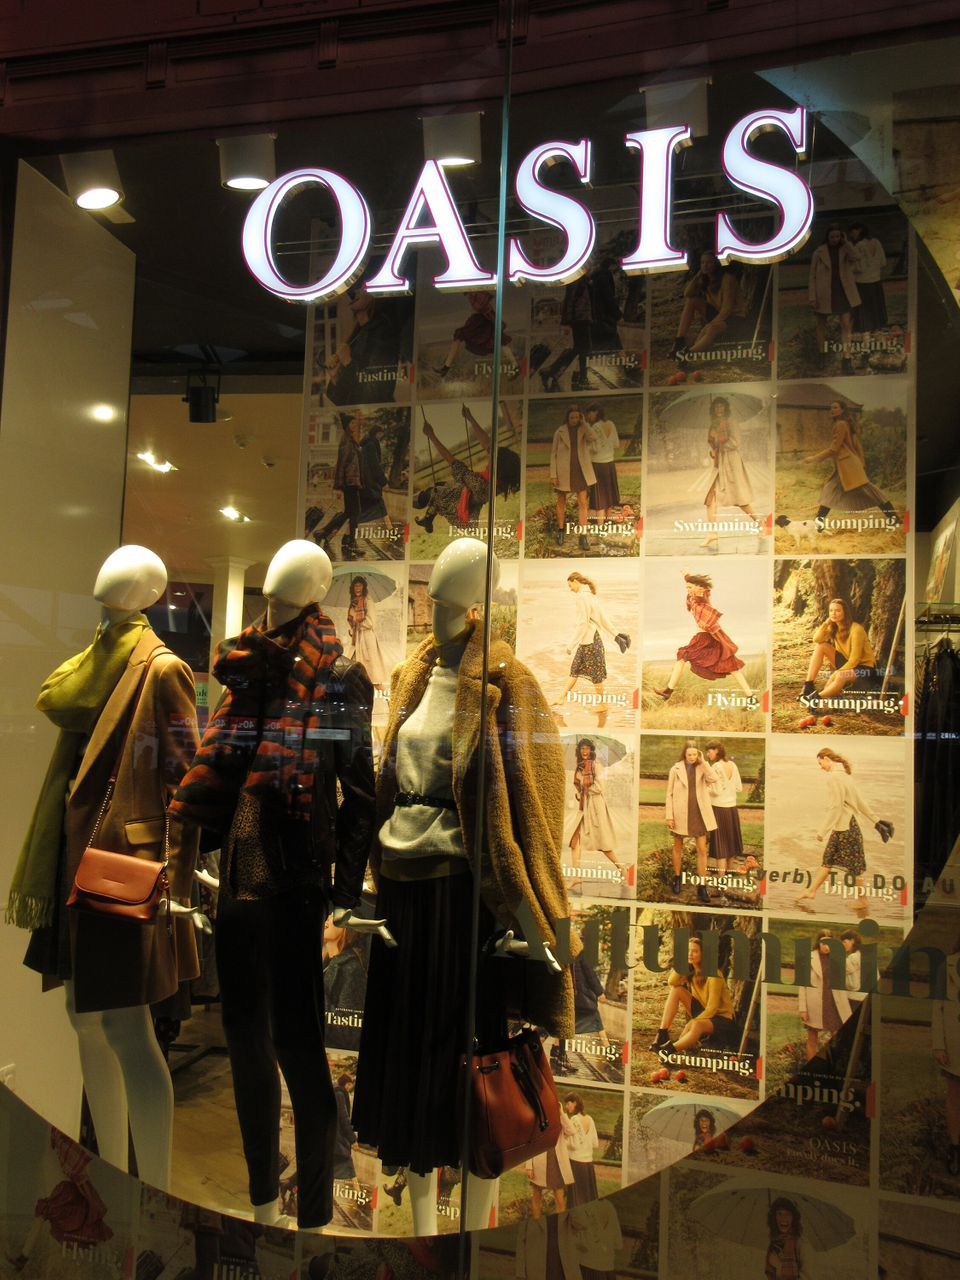 The high street brands are set to disappear as